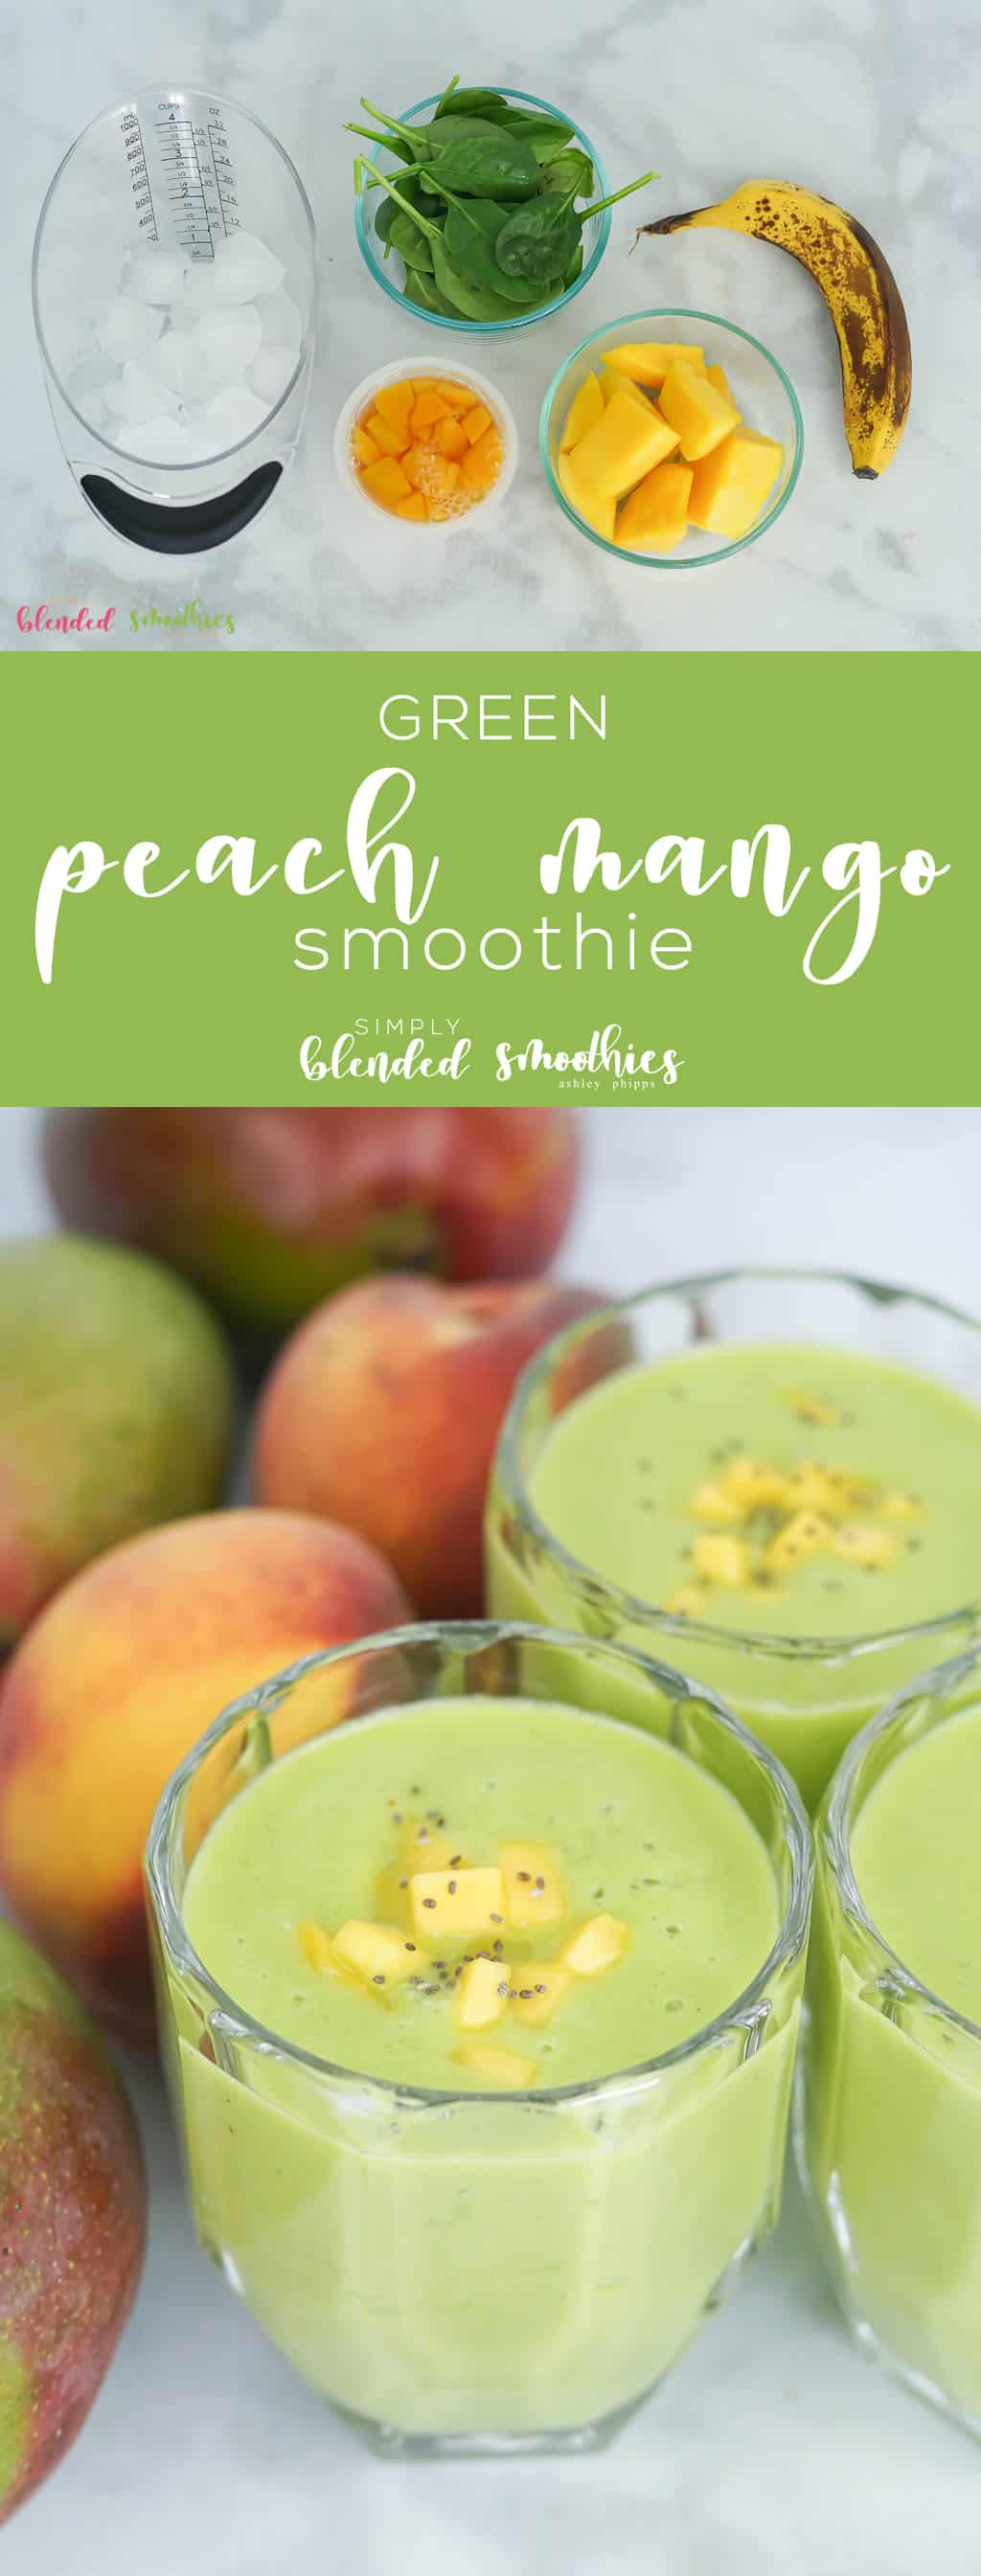 Green Peach Mango Smoothie - This delicious Green Peach Mango Smoothie tastes like a tropical treat and is a healthy and nutrient-rich was to begin your day